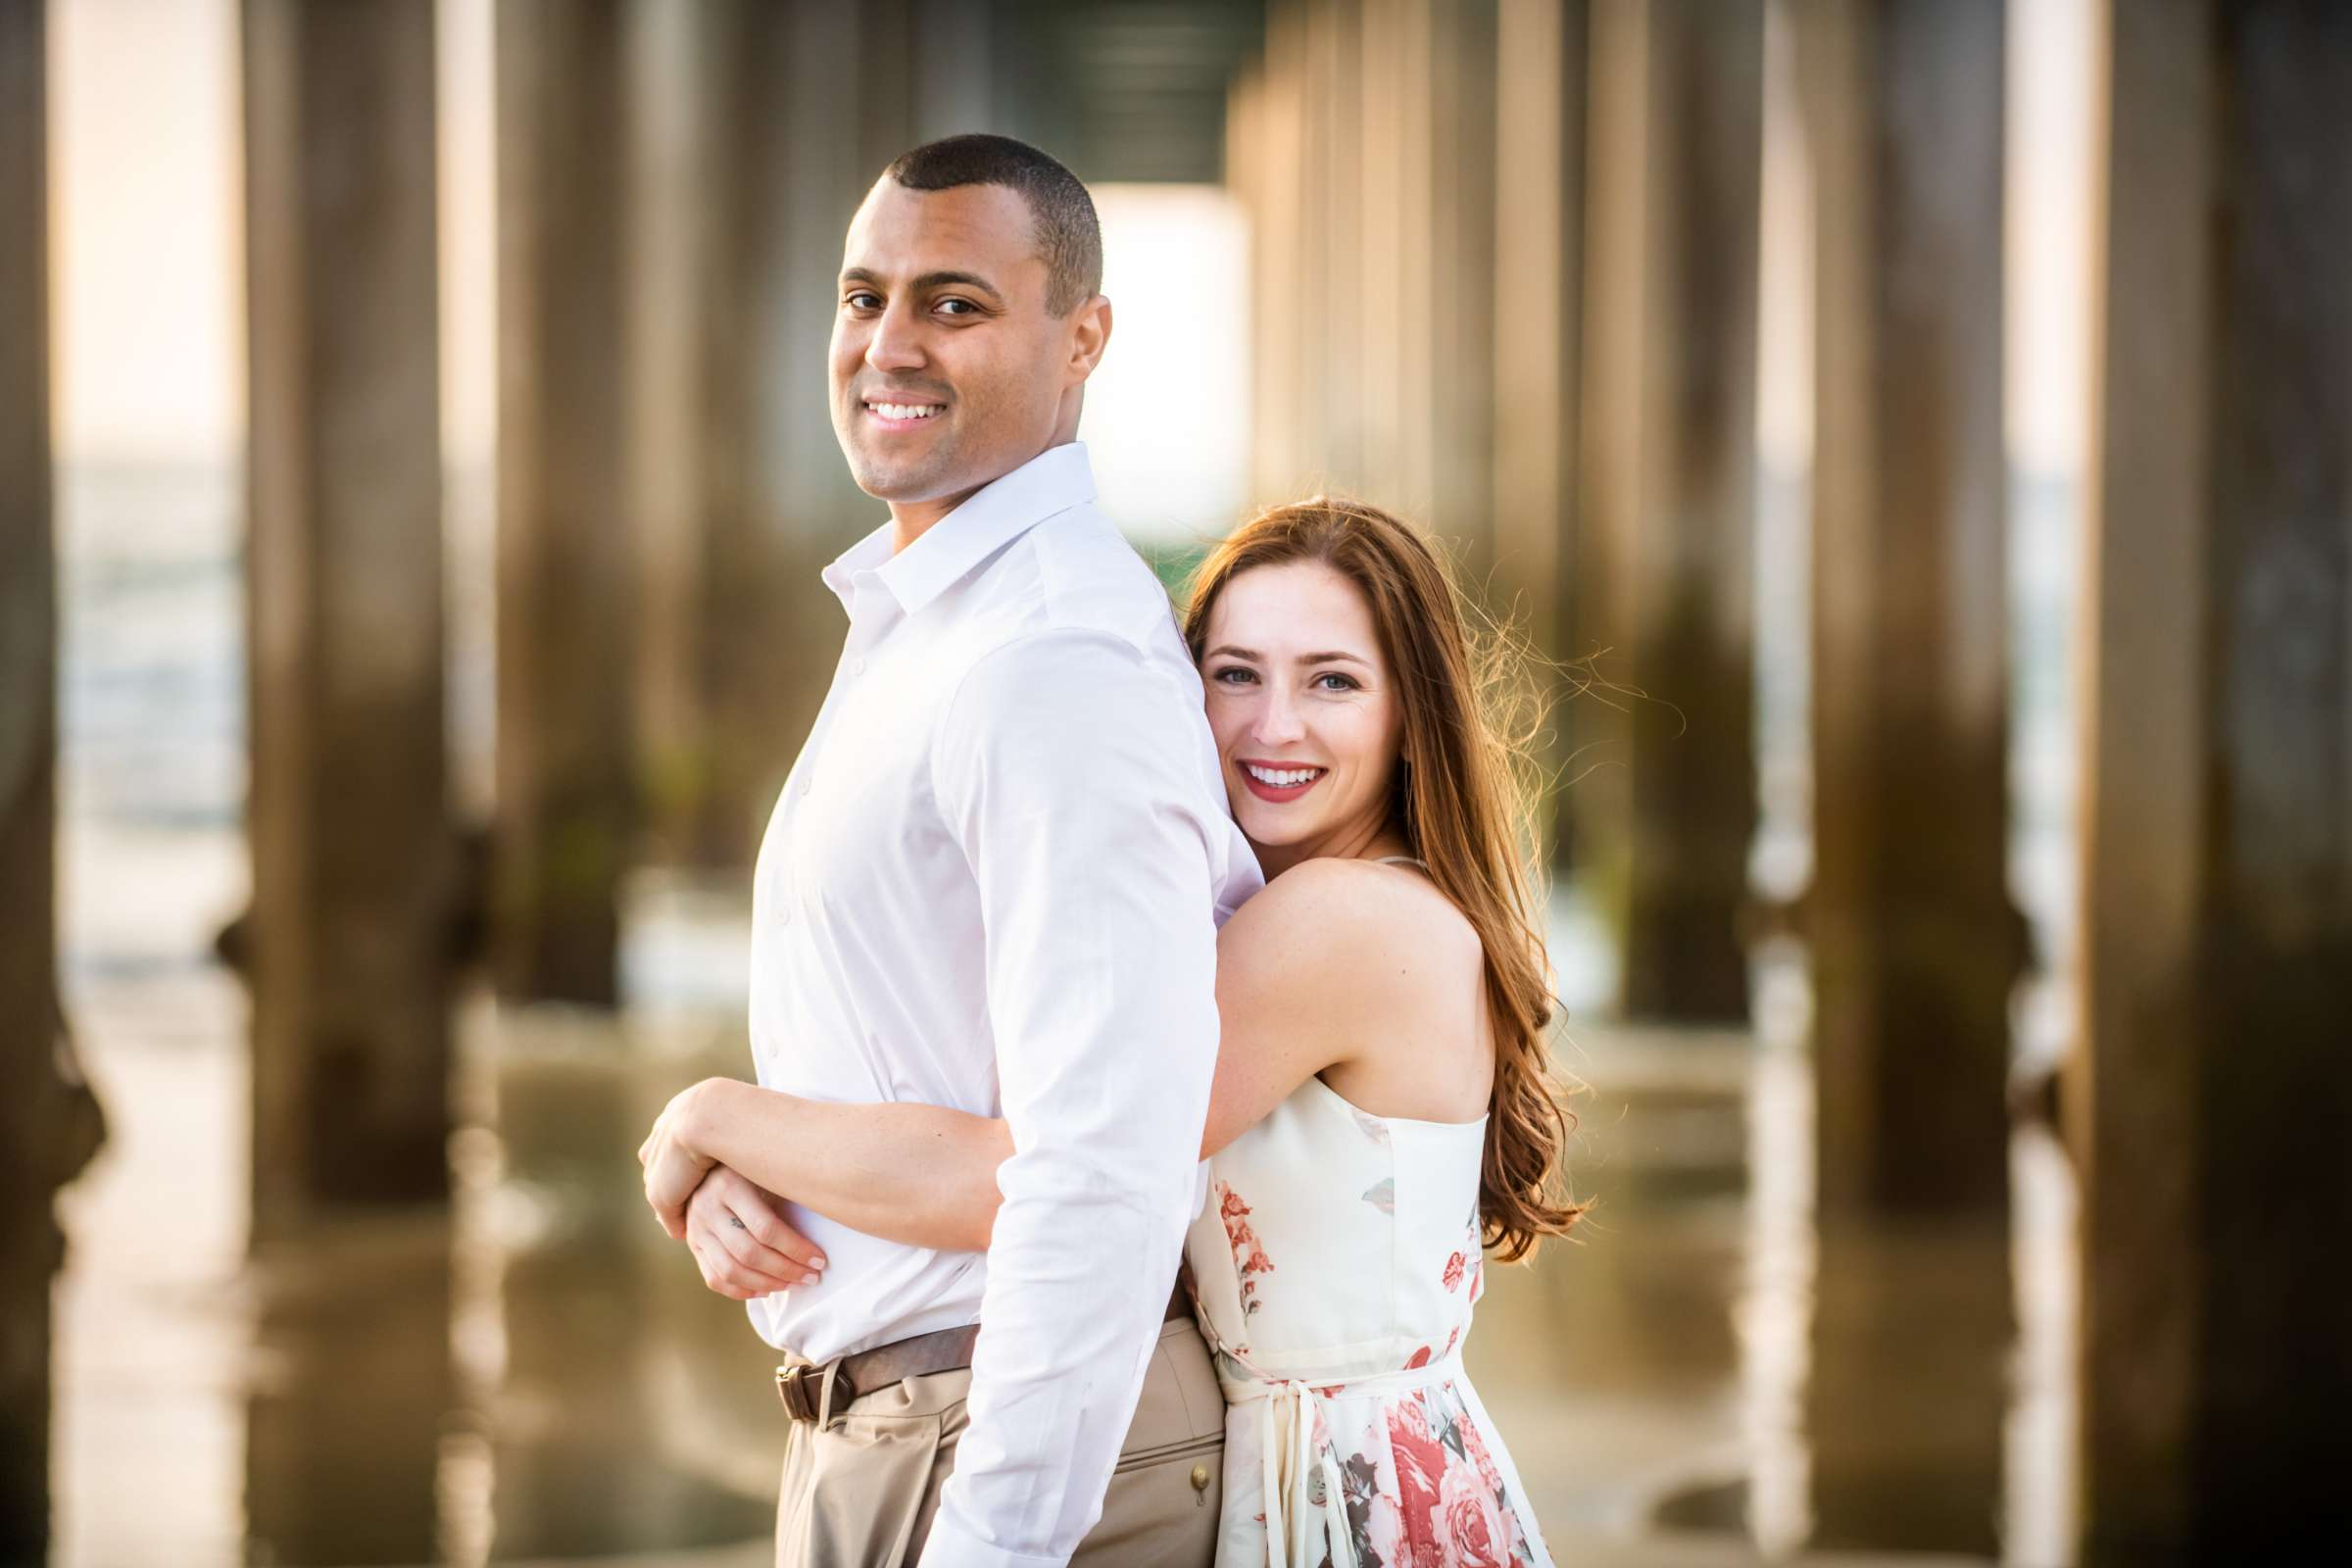 Engagement, Alexia and Kalin Engagement Photo #617330 by True Photography